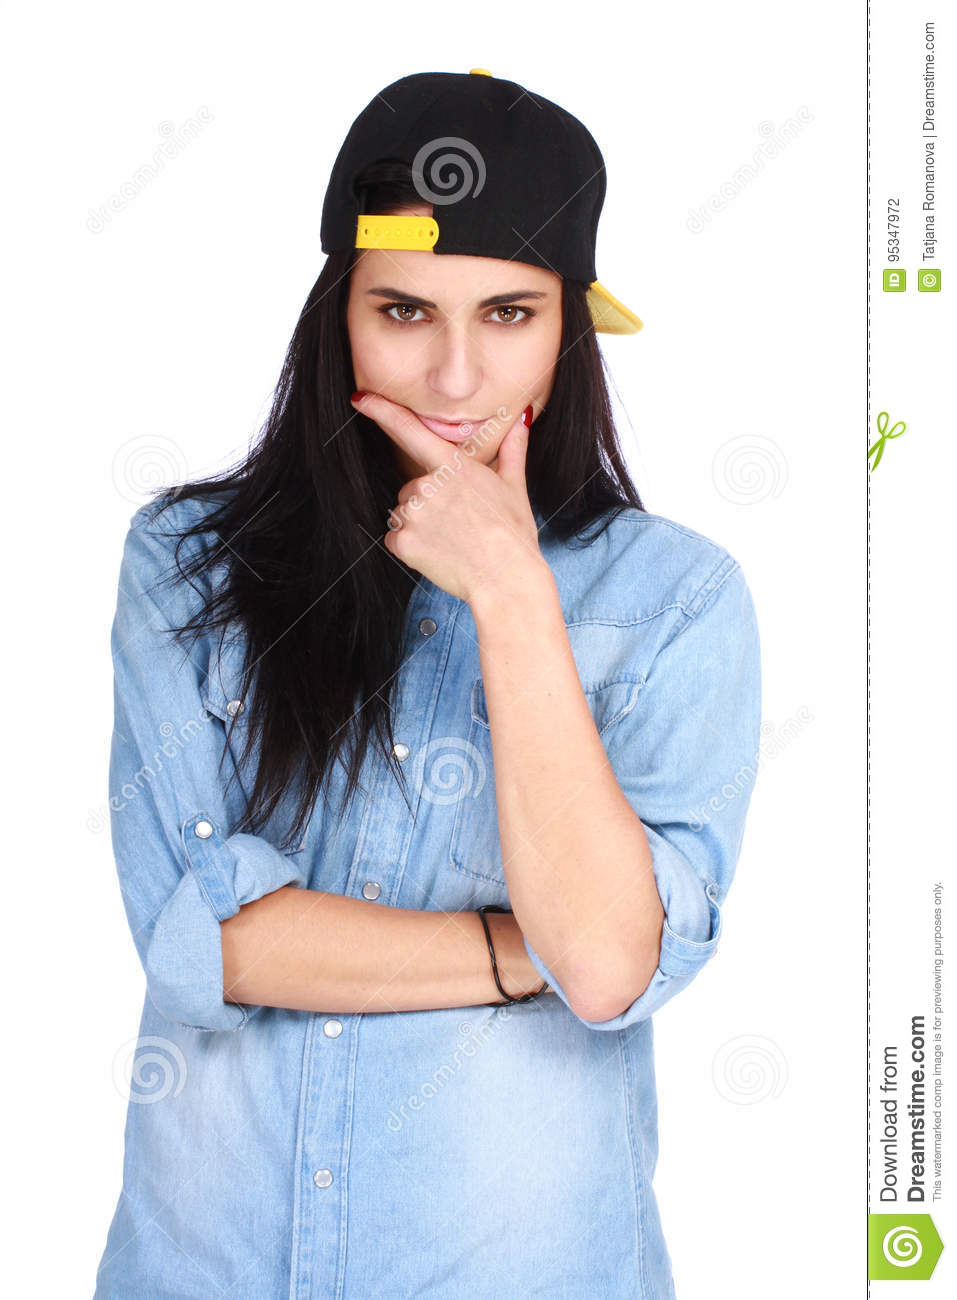 Portrait of young woman in cap posing on white